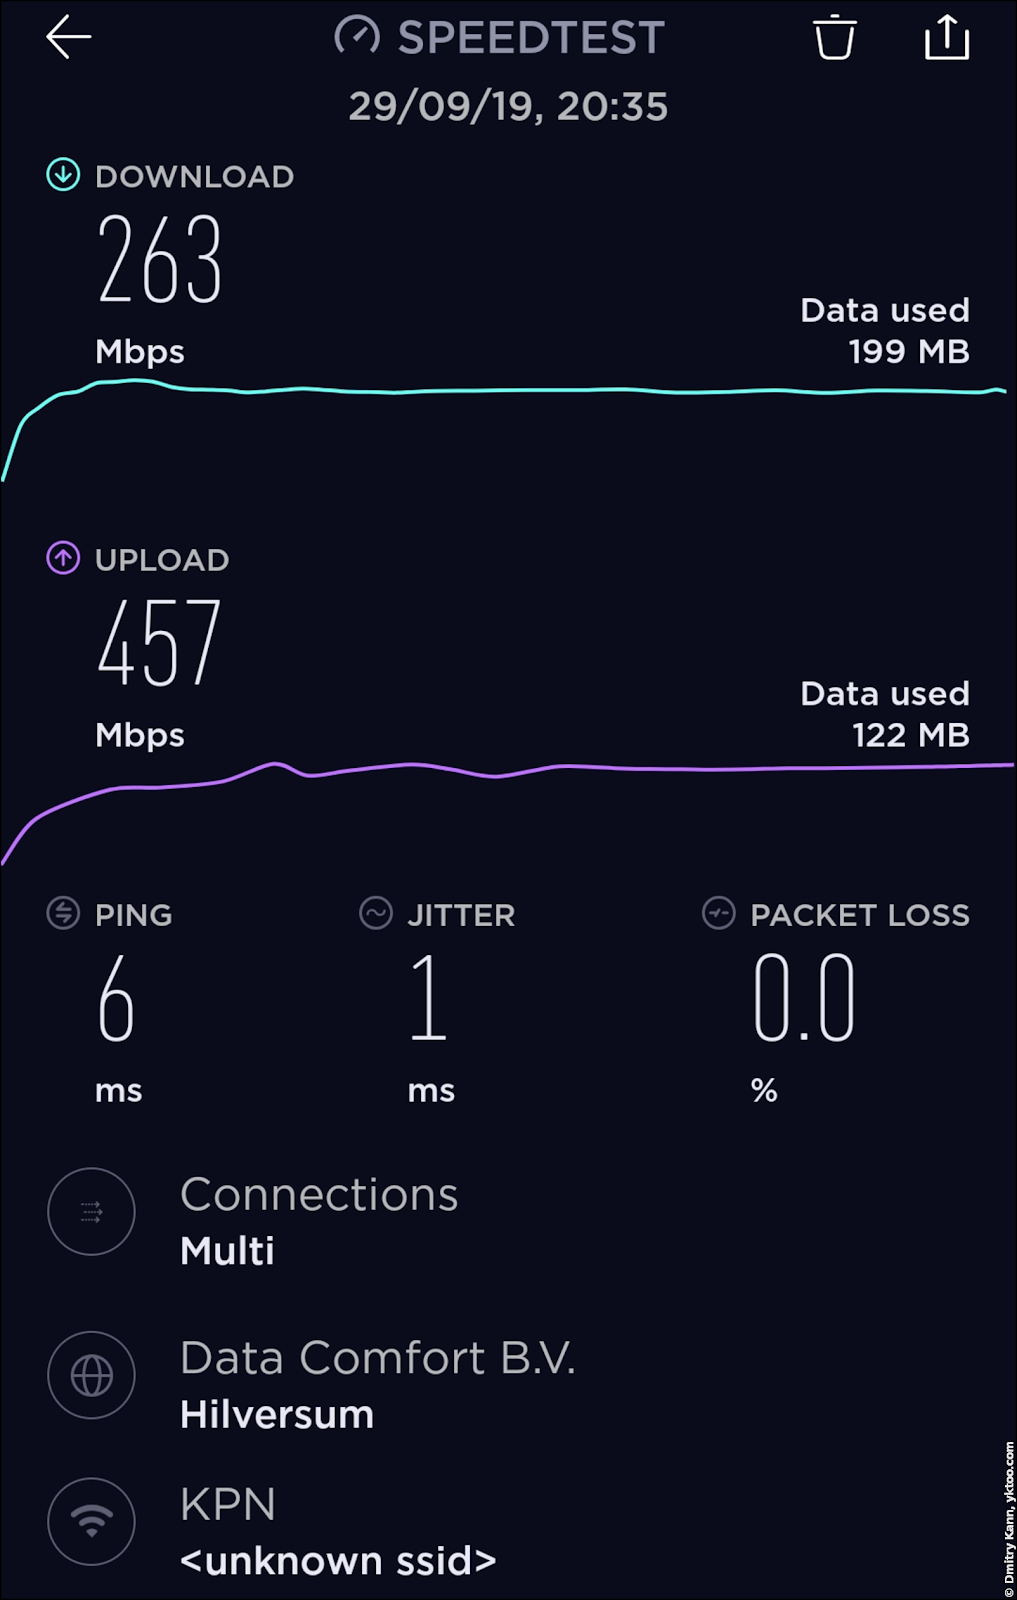 Wi-Fi speed, next to the satellite — speedtest.net.